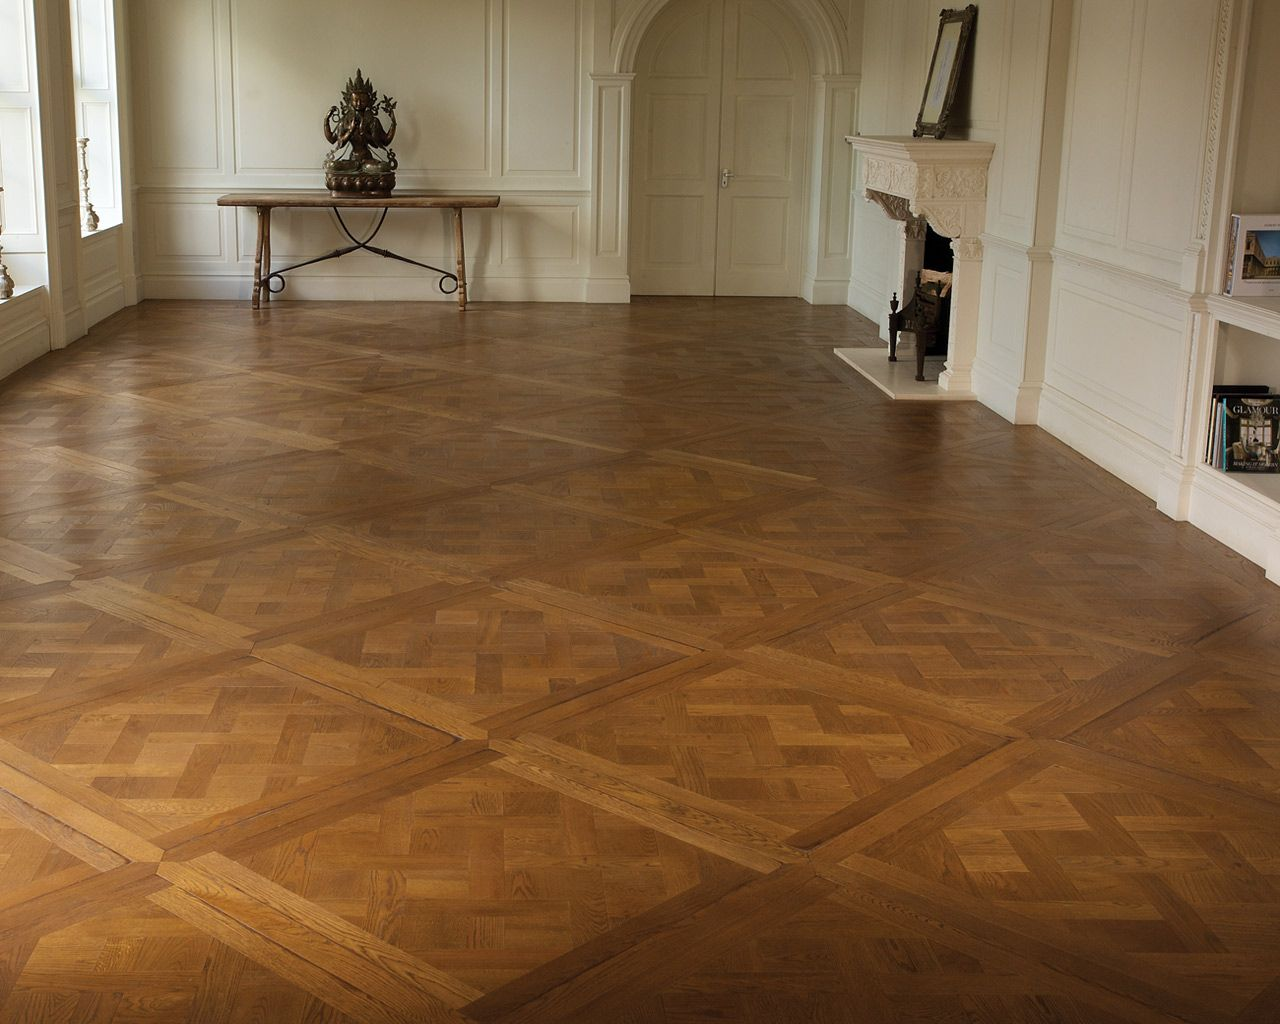 Parquet google search sophies room decorations pinterest parquet google search dailygadgetfo Gallery